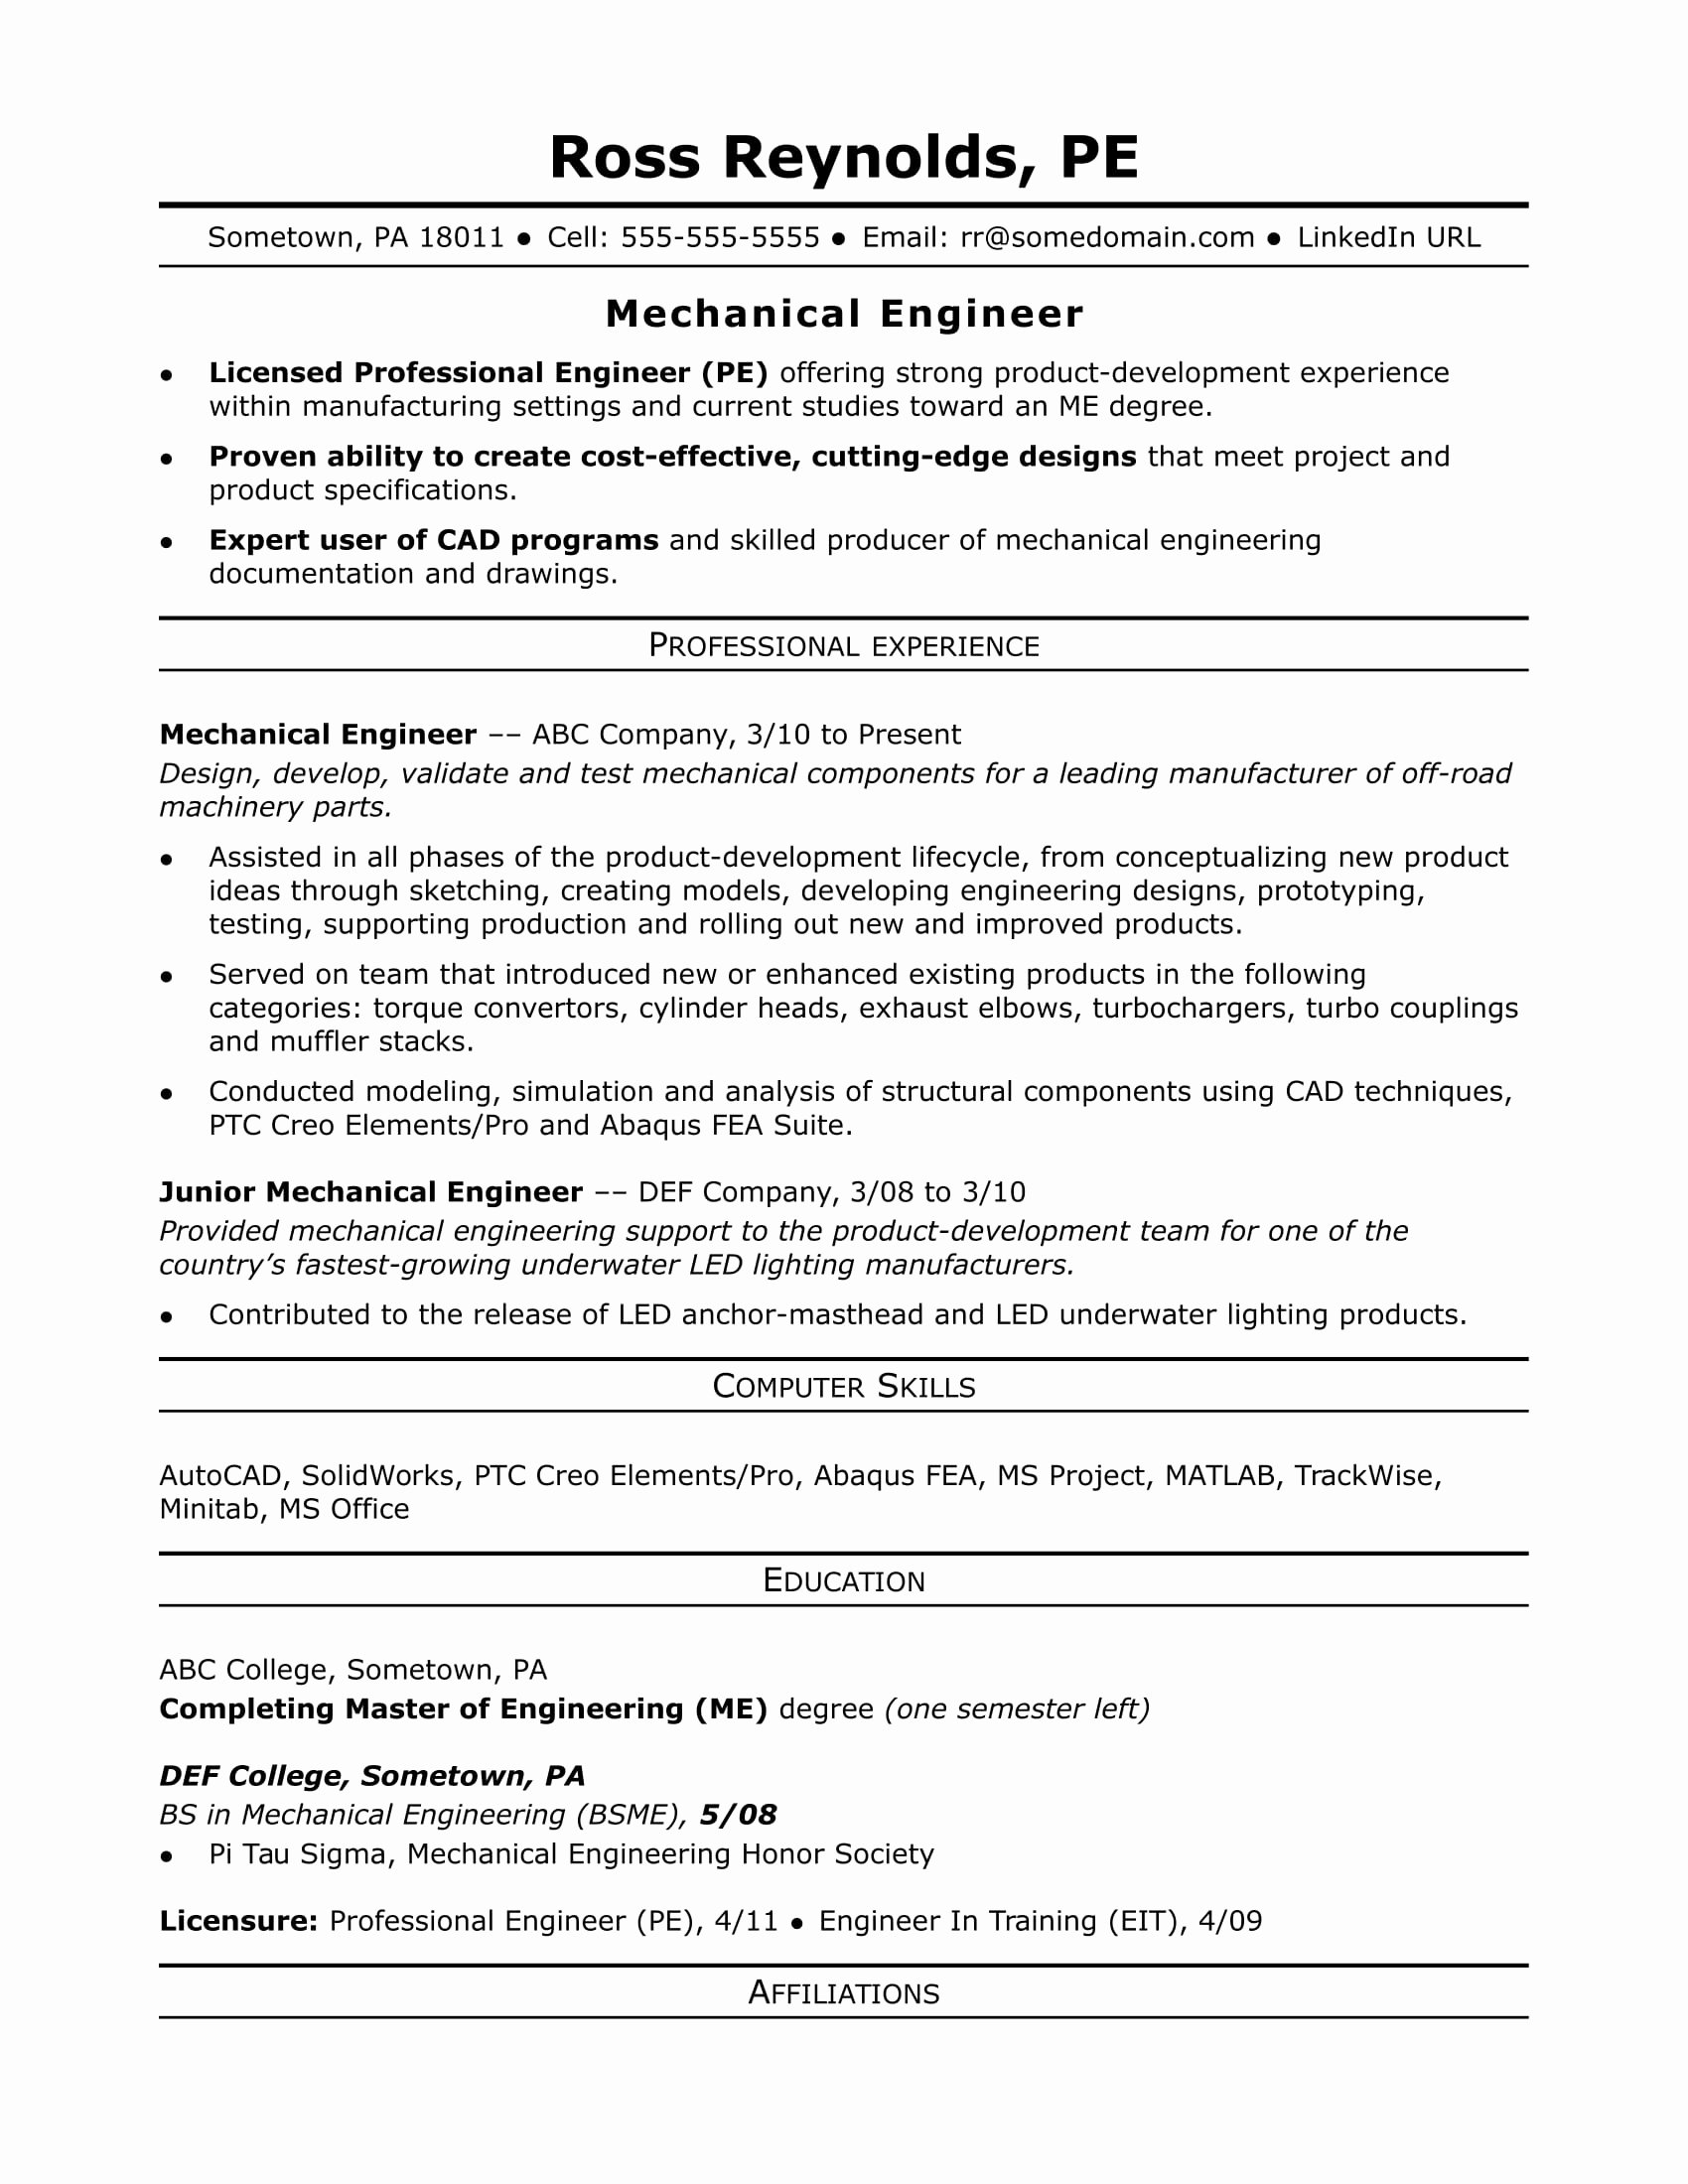 Mechanical Engineer Resume Sample Lovely Sample Resume for A Midlevel Mechanical Engineer